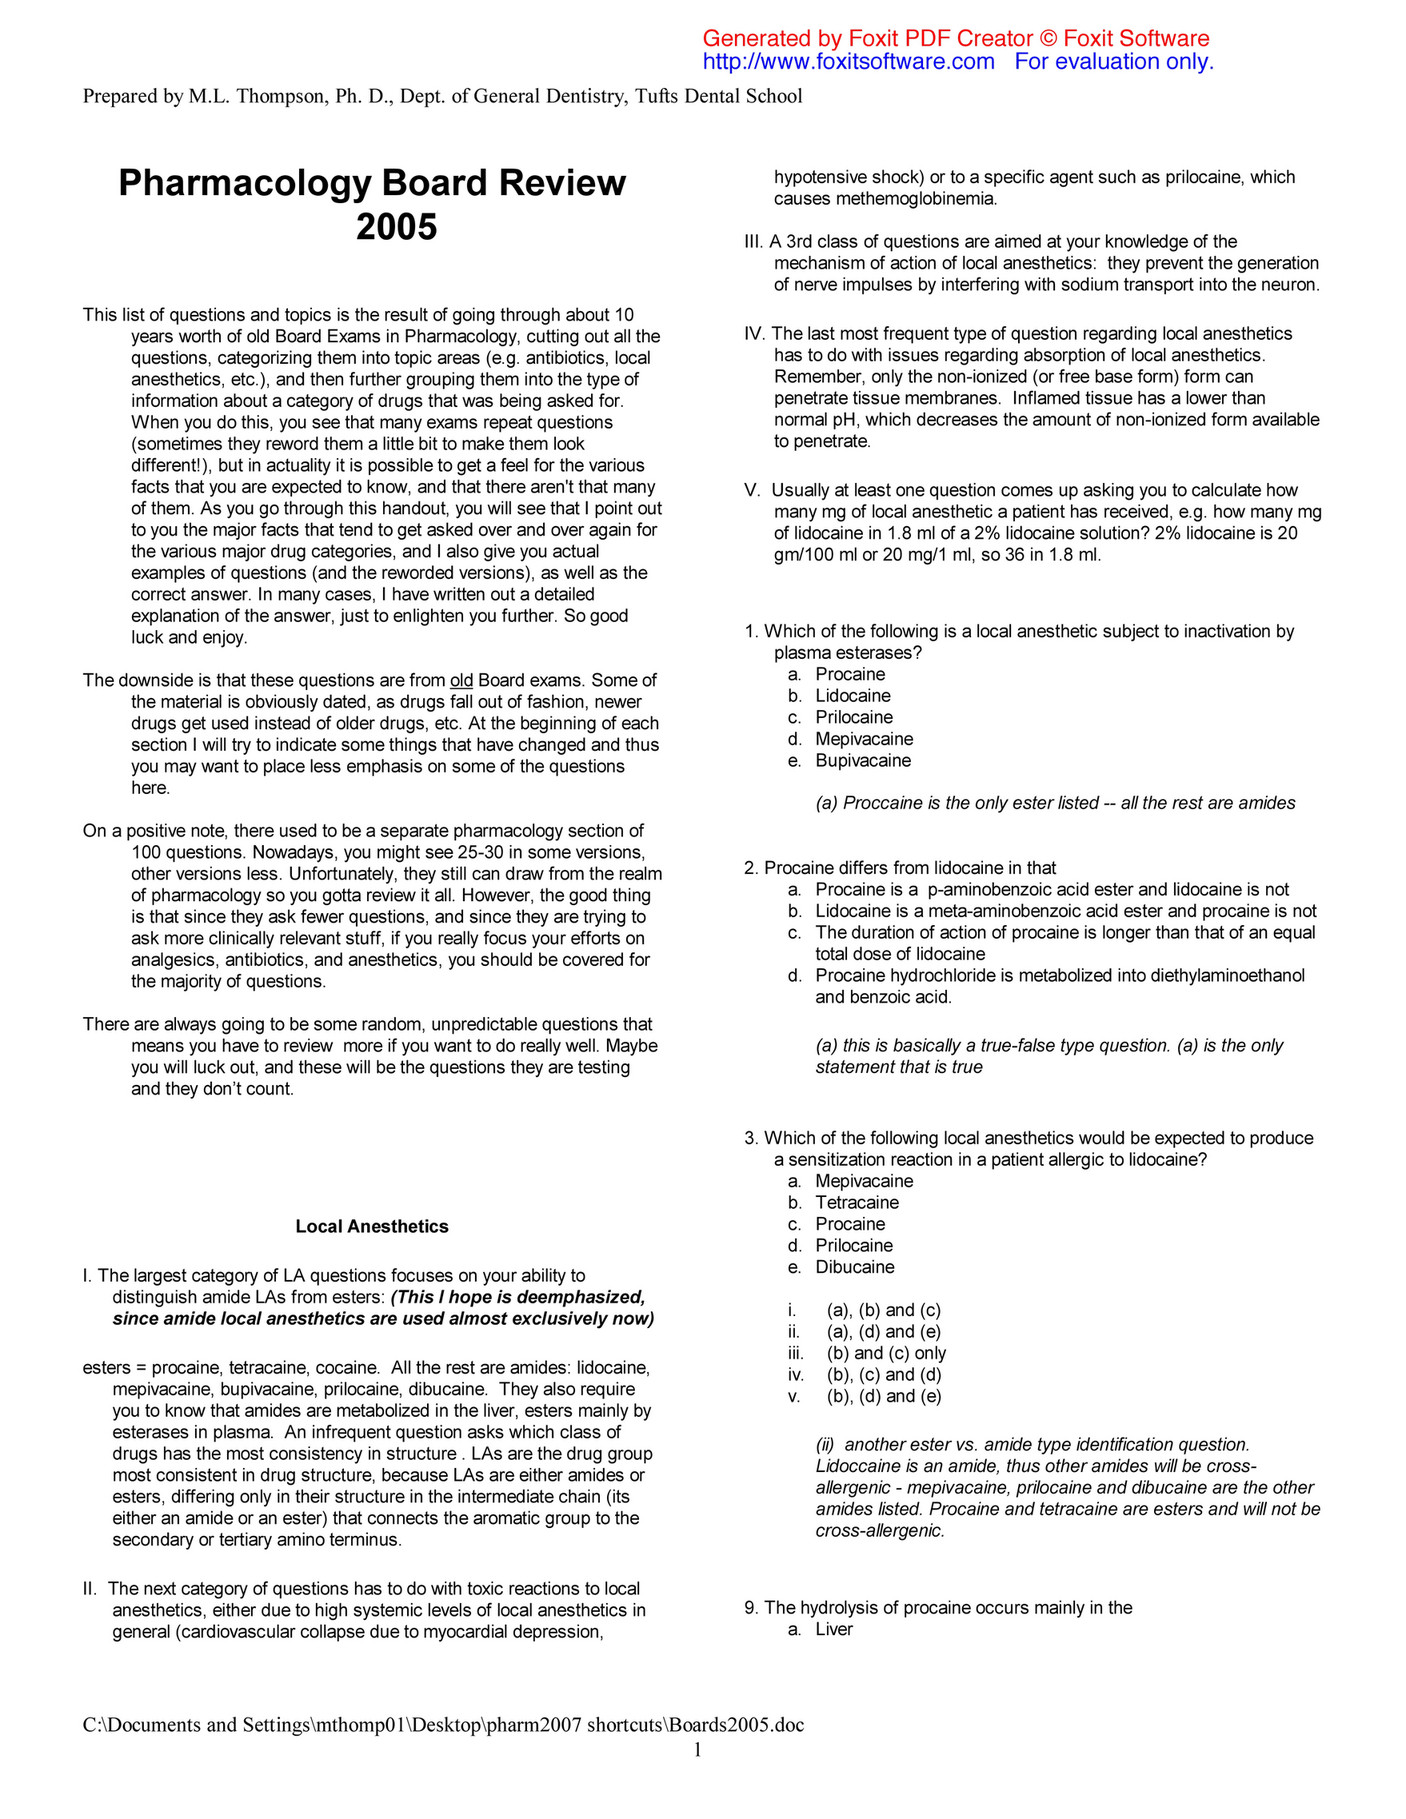 DentEmp - PharmBoardReview - Page 1 - Created with Publitas com